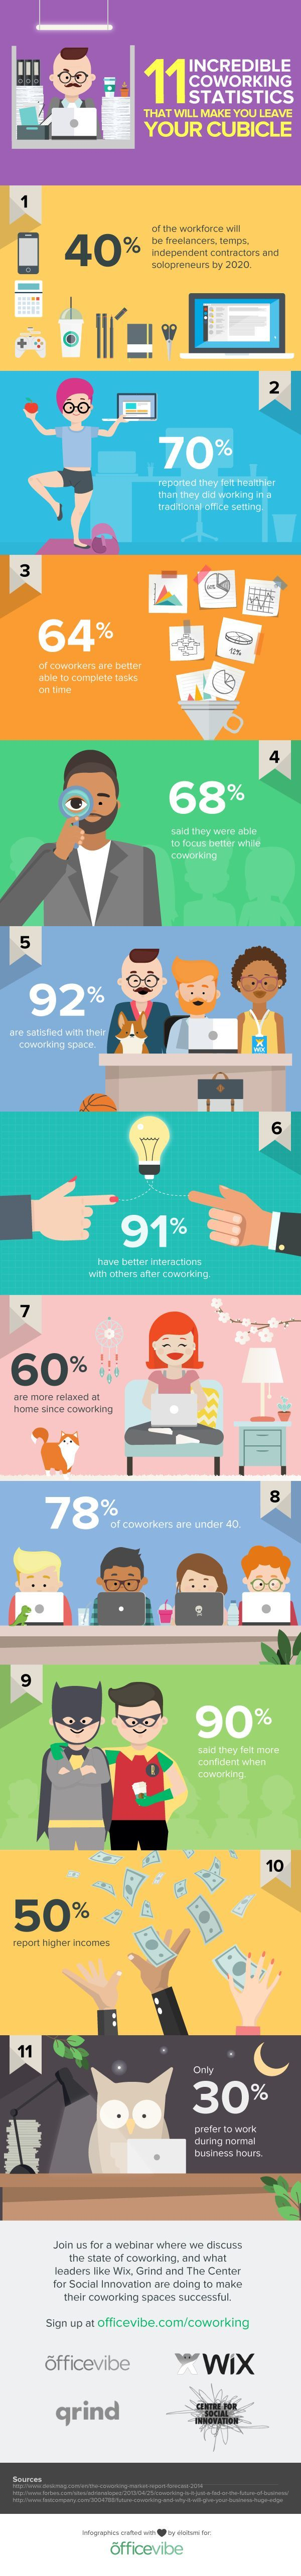 11 Incredible #Coworking Statistics That Will Make You Leave Your Cubicle (#Infographic)|Jeff Fermin